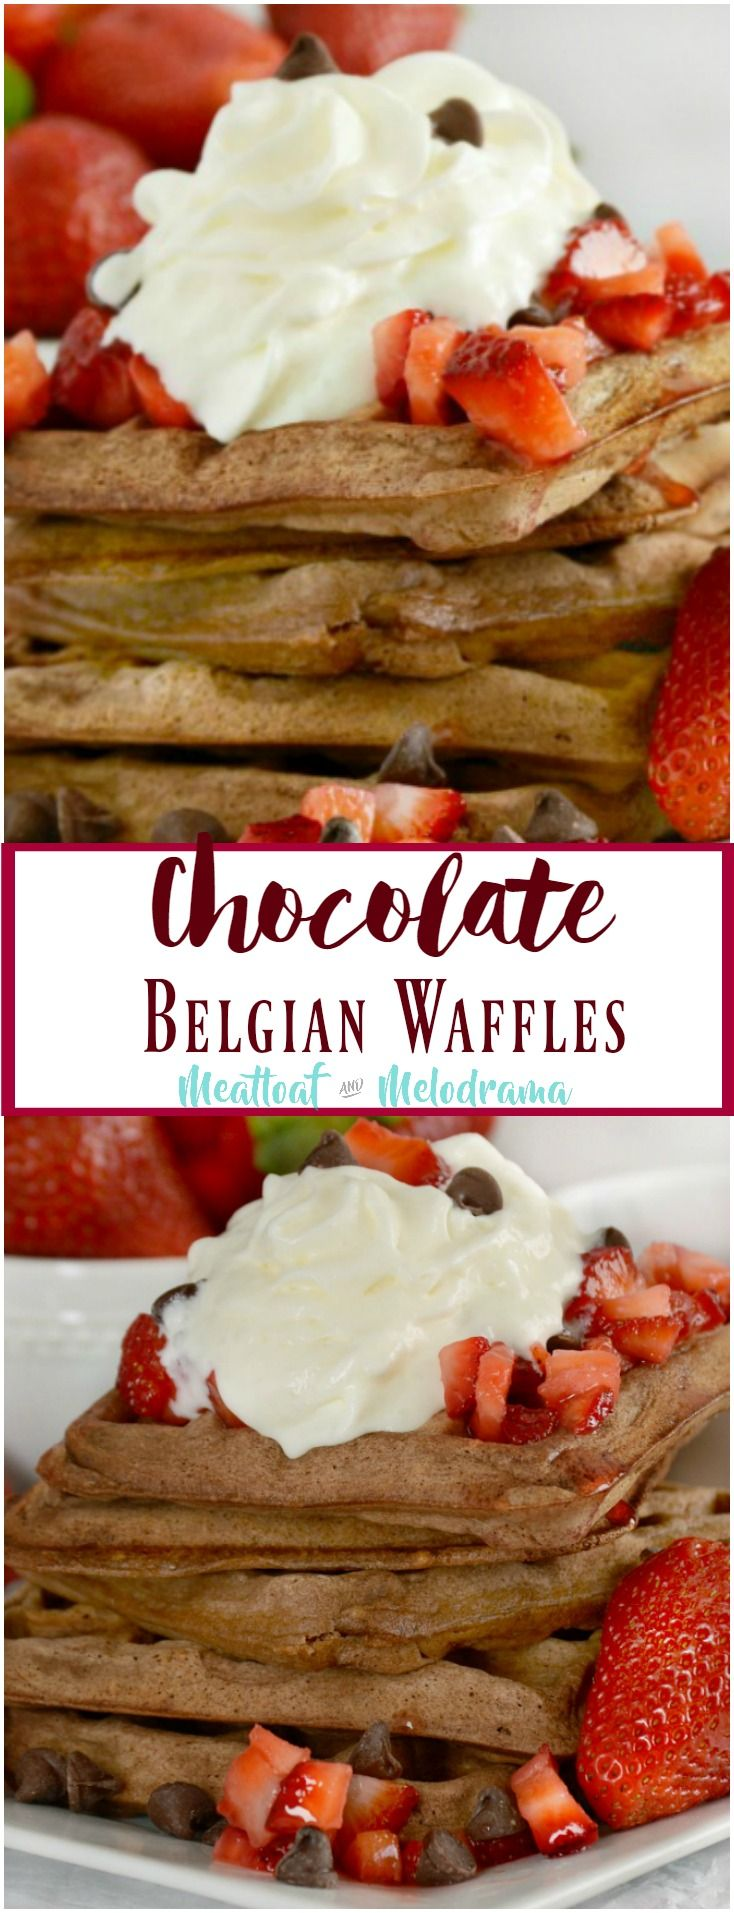 Easy Chocolate Belgian Waffles - Topped with macerated strawberries and whipped cream, these are perfect for a special breakfast or brunch, especially Valentine's Day, Mother's Day or birthdays! From Meatloaf and Melodrama